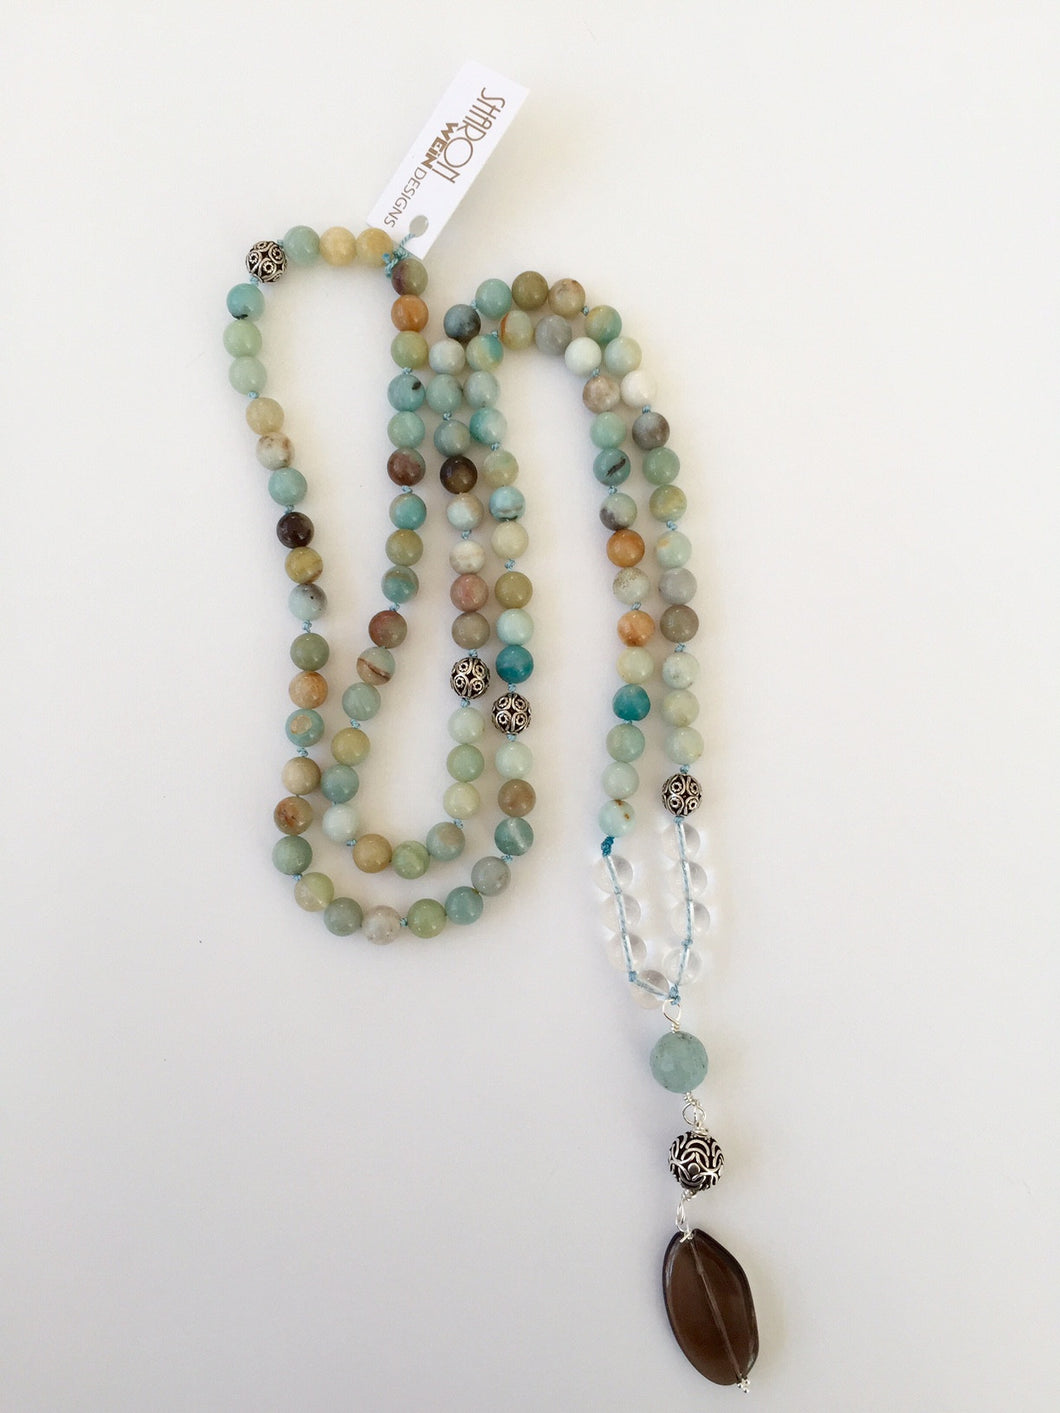 This Mala necklace is made of amazonite, smoky quartz, aquamarine, bali silver beads and silk. It measures 18.5